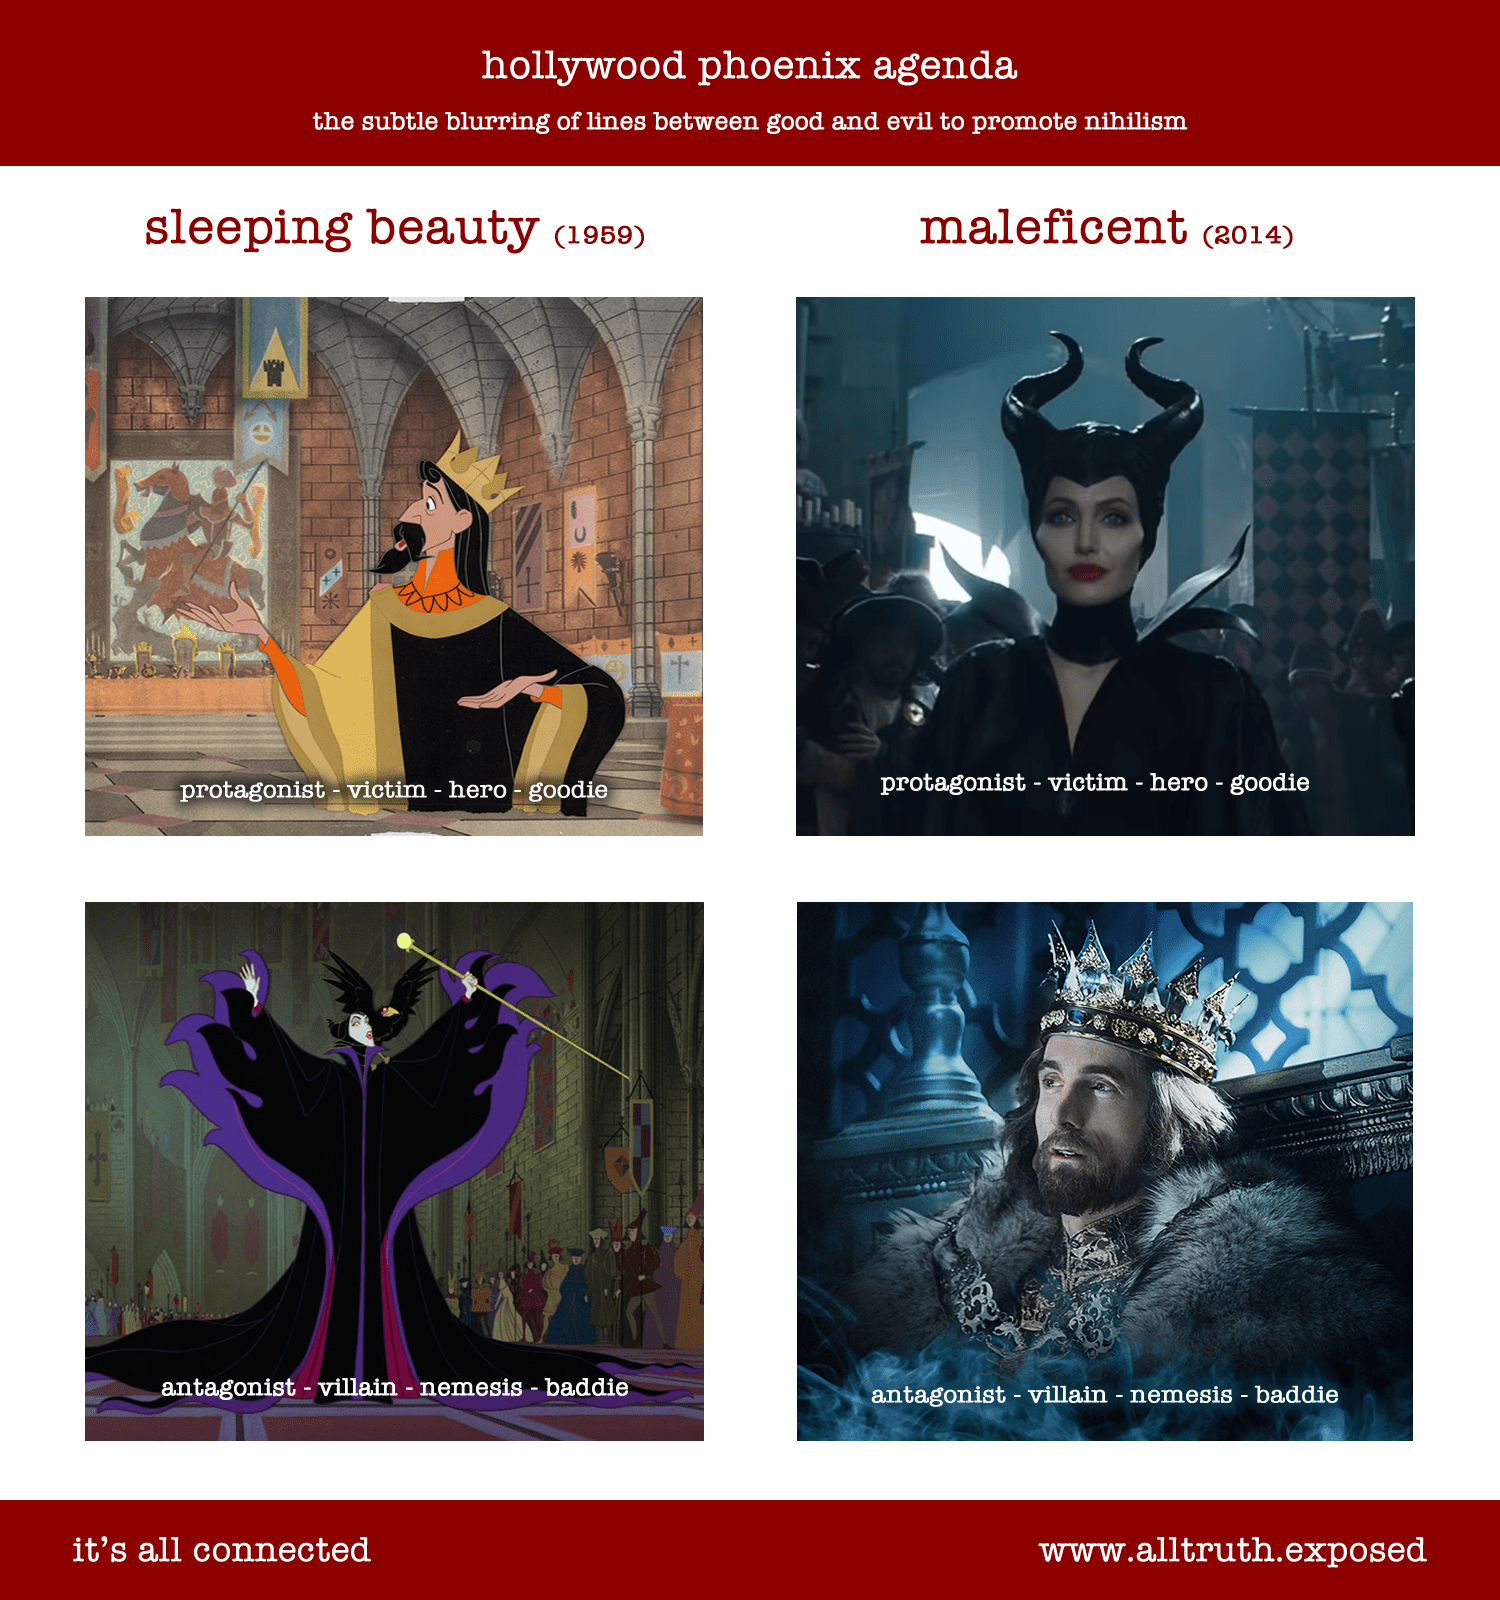 the phoenix agenda maleficent sleeping beauty hollywood kabballa satanism